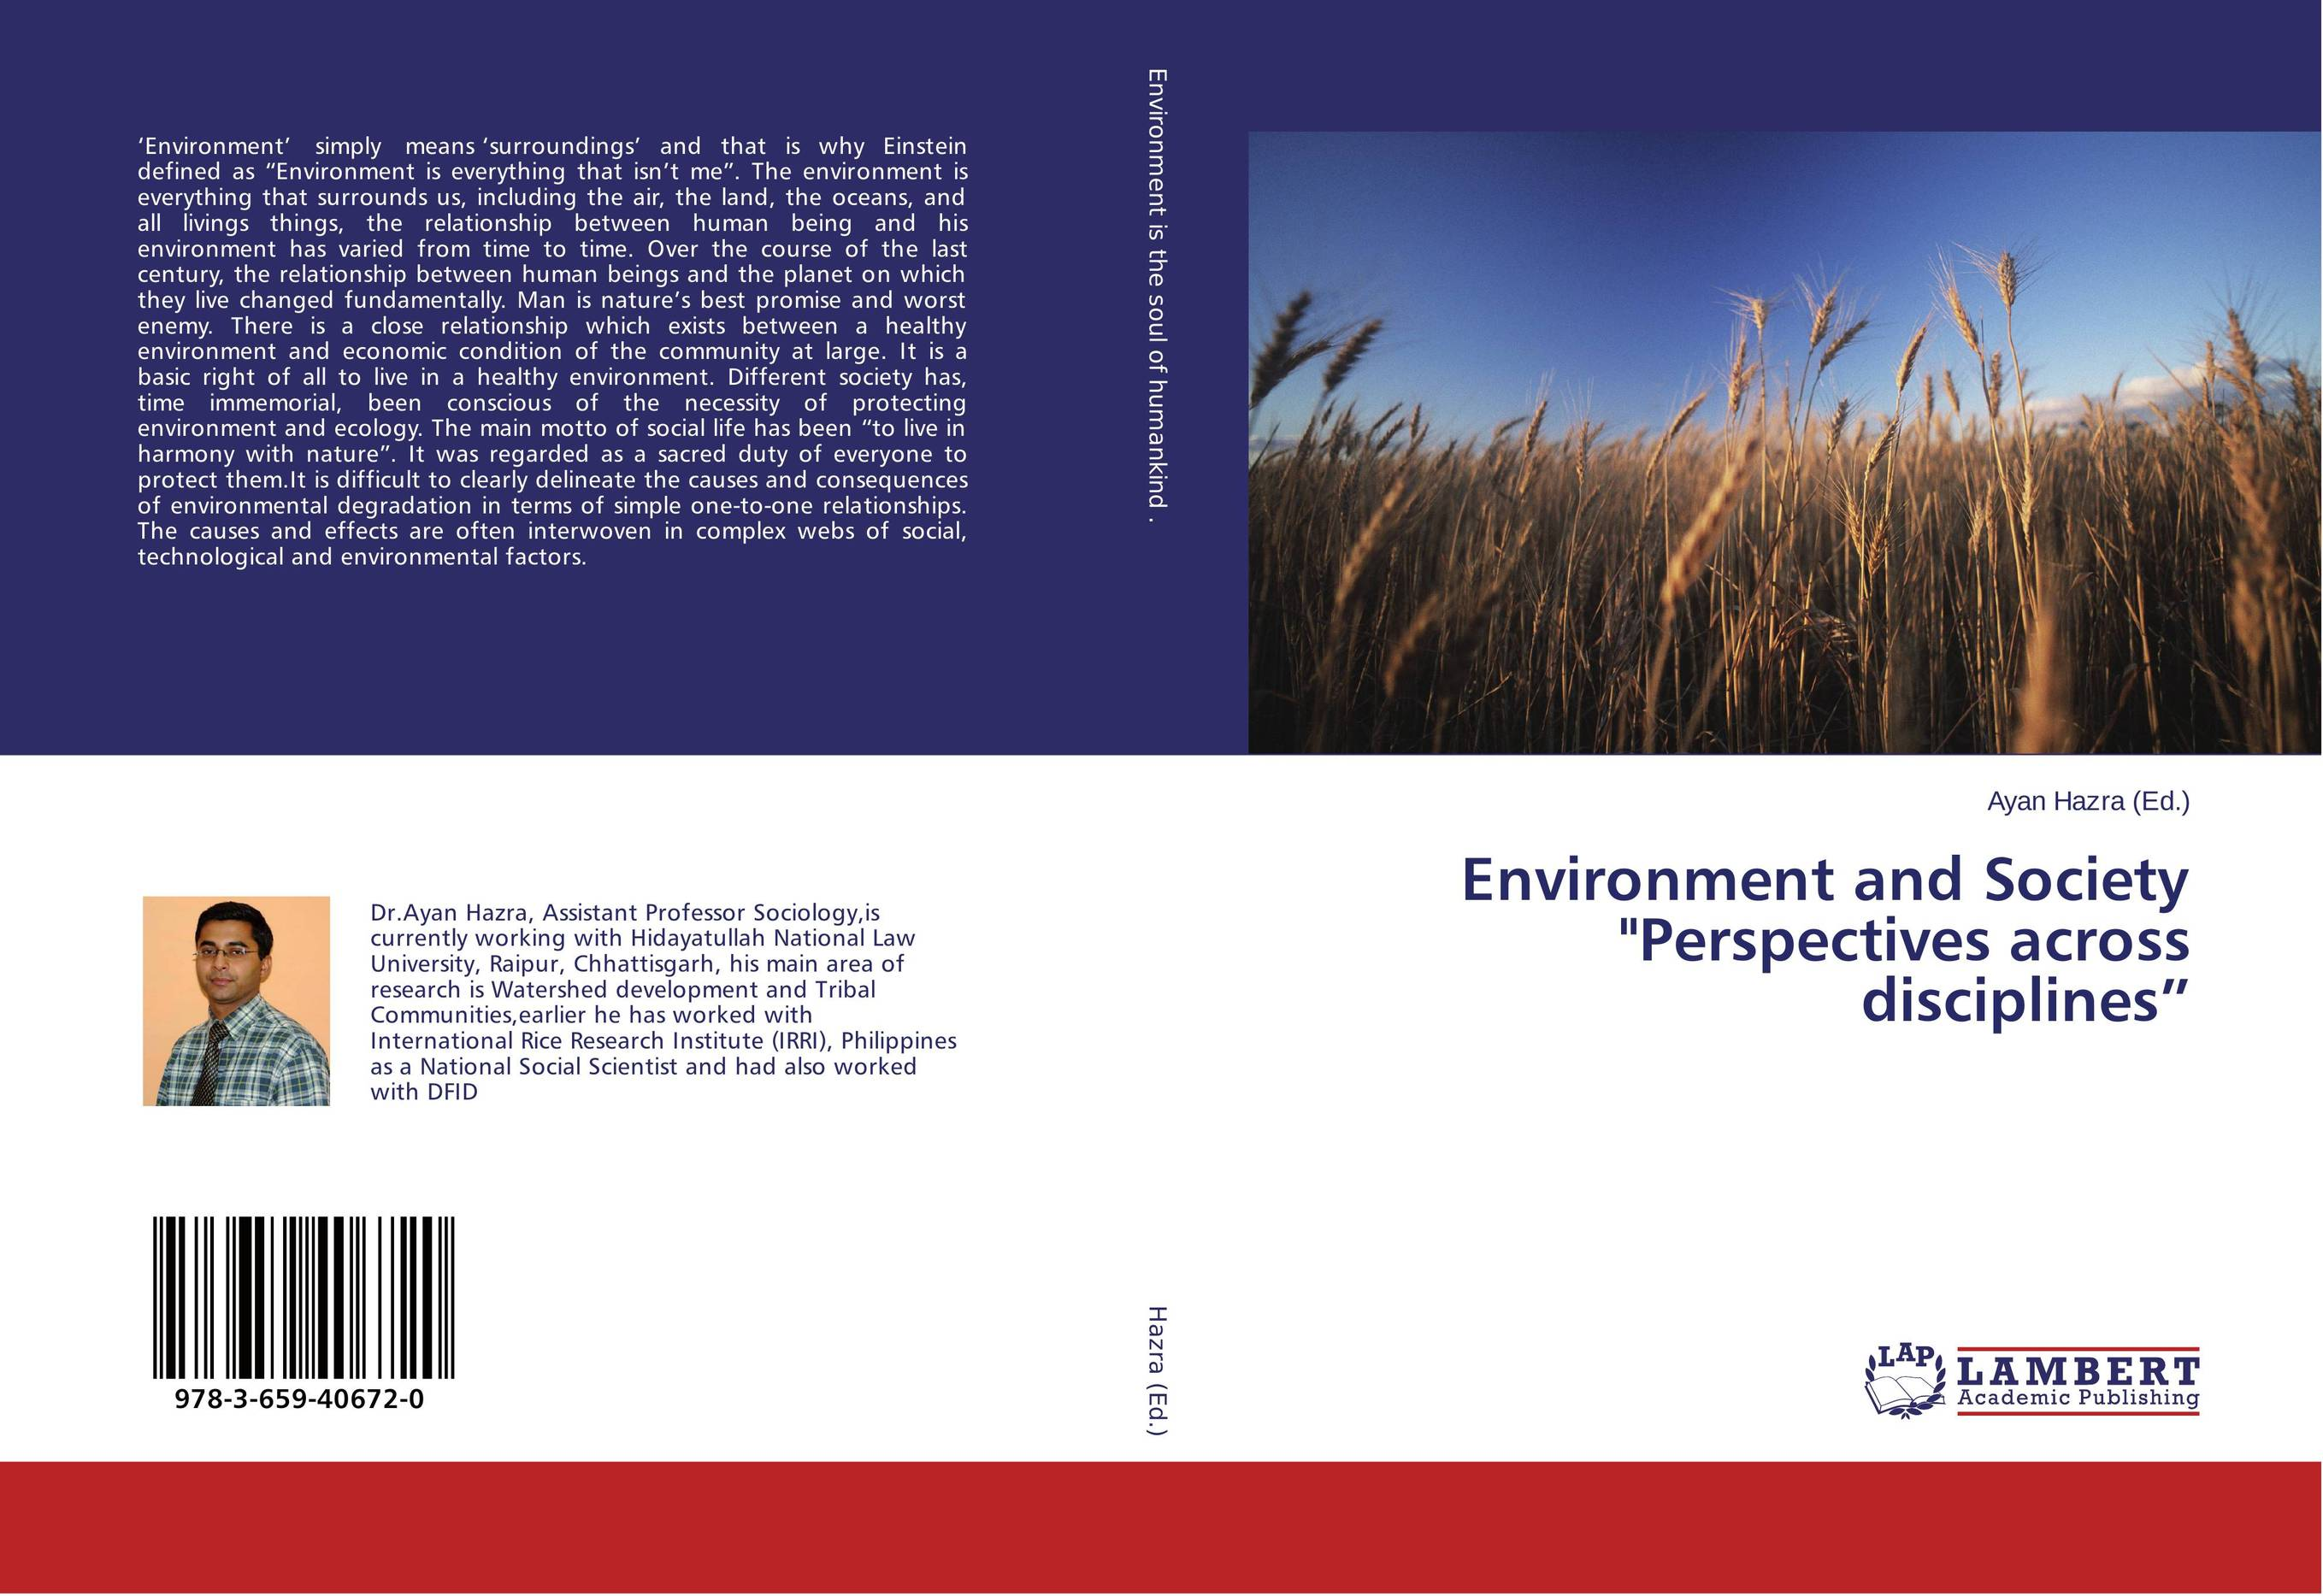 Environment and Society Perspectives across disciplines""